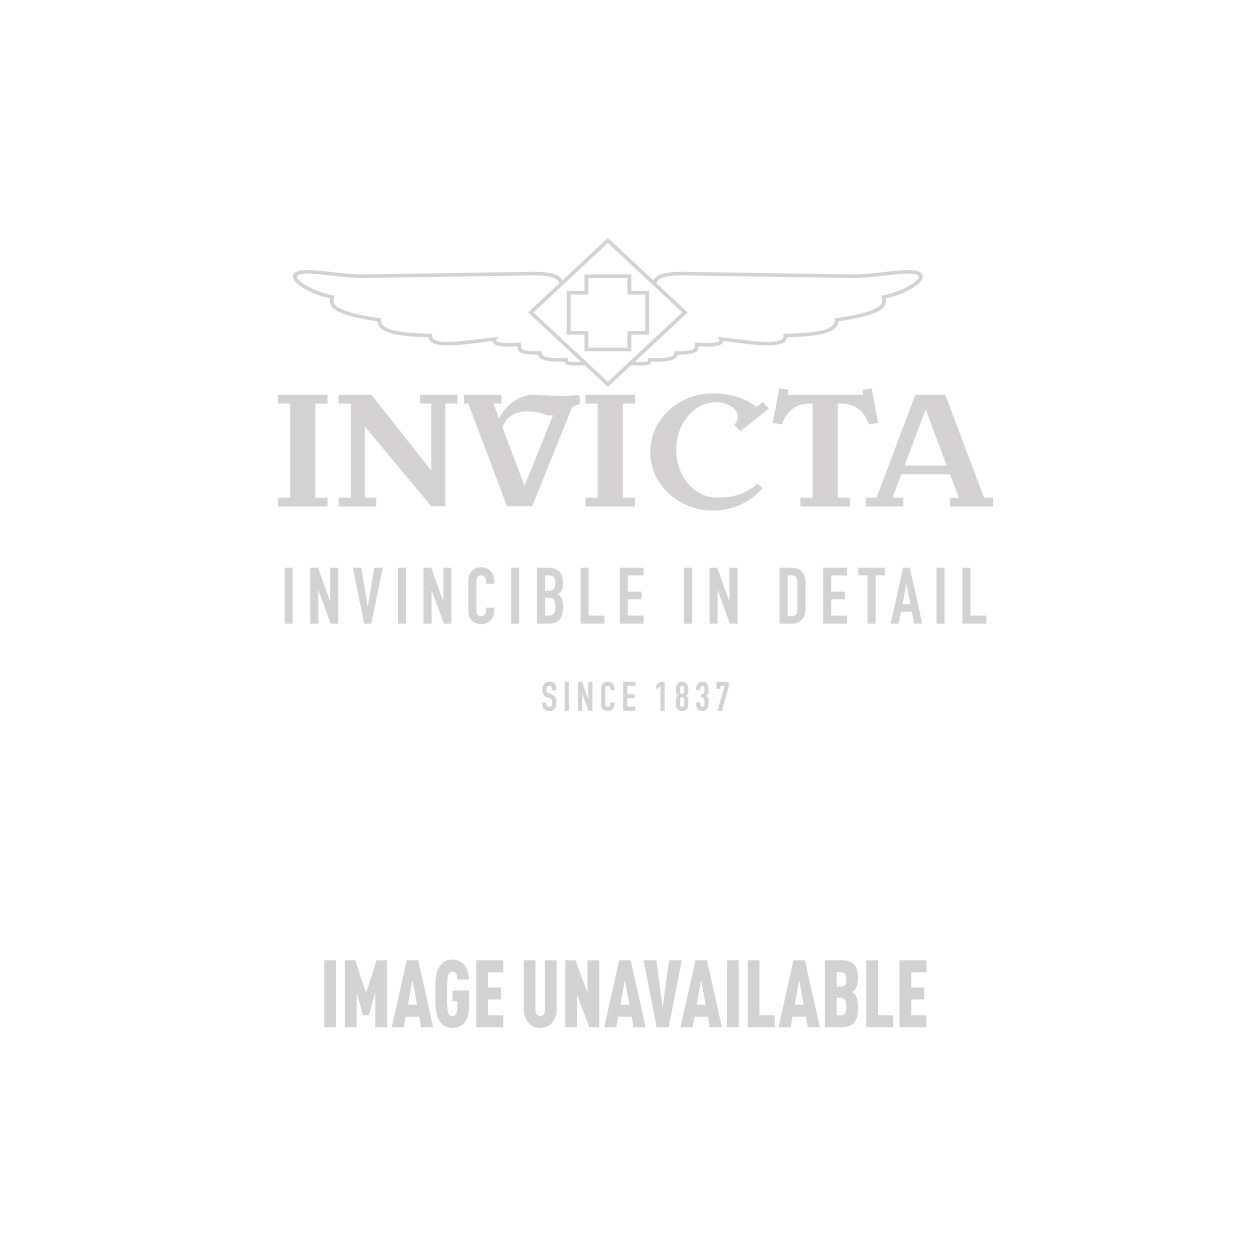 Invicta Cuadro Swiss Movement Quartz Watch - Rose Gold case with Rose Gold tone Stainless Steel band - Model 14701